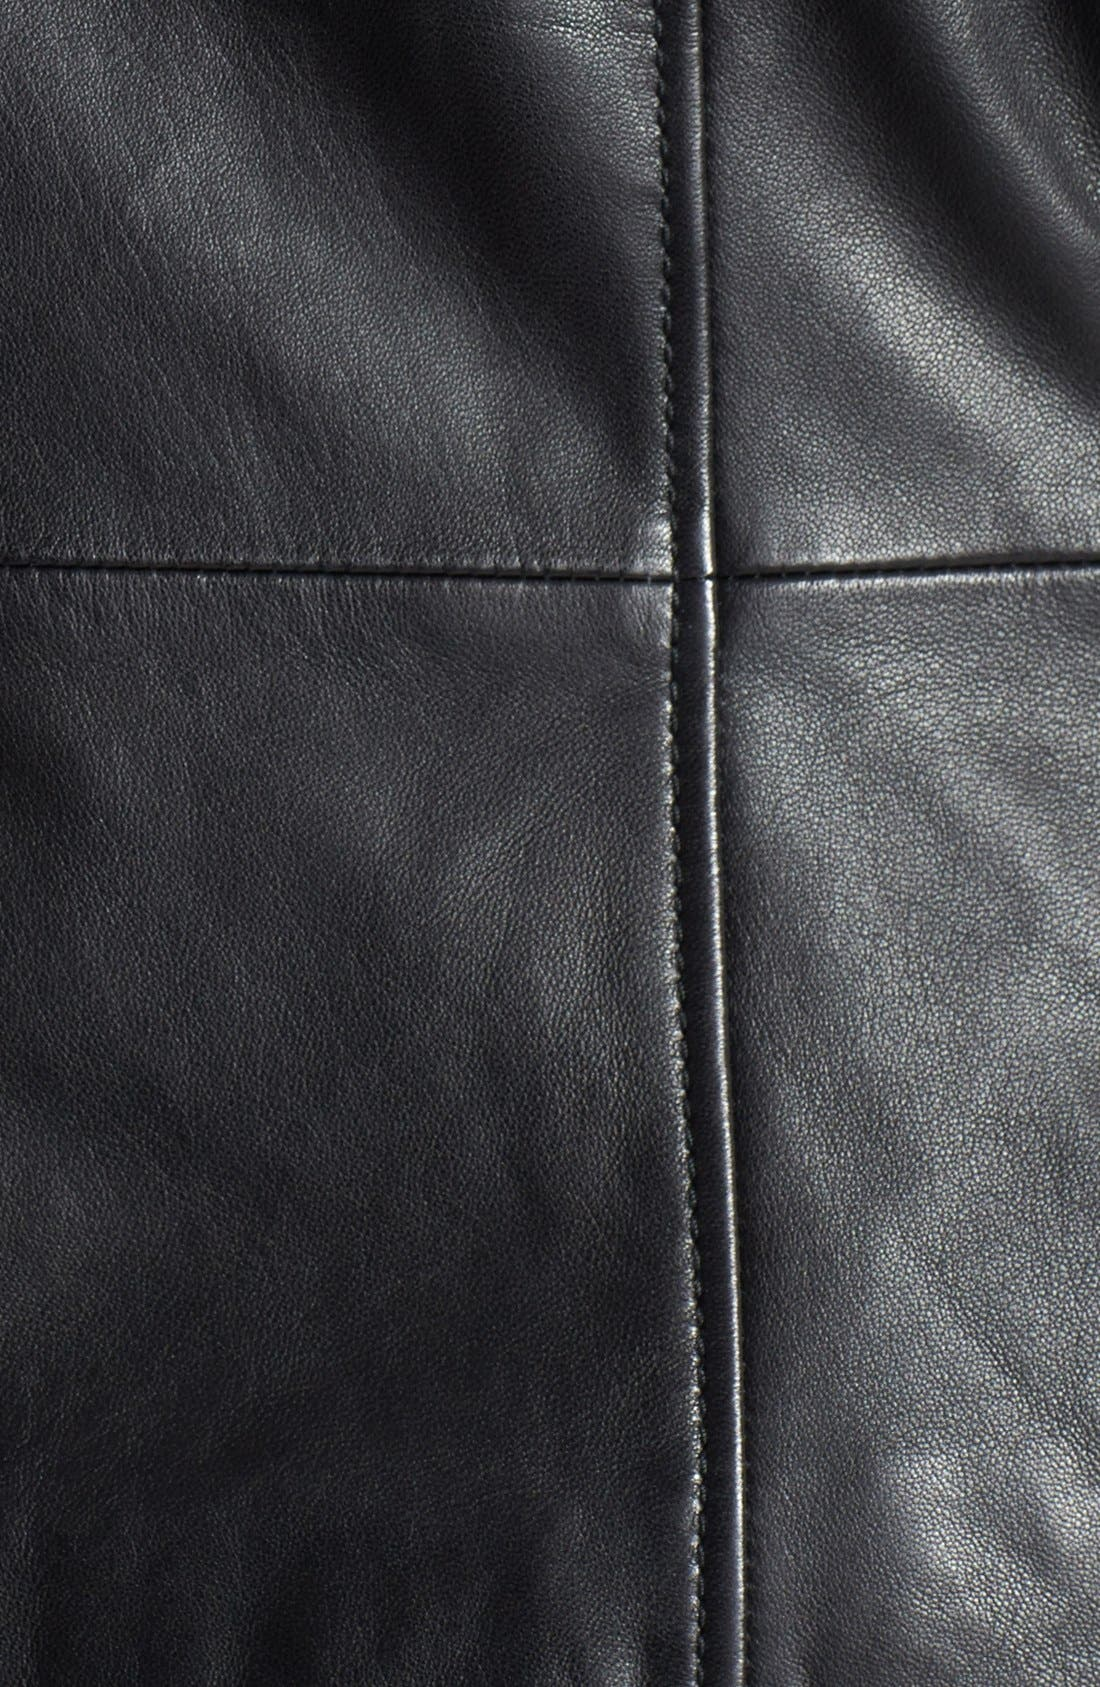 Waterfall Front Leather Jacket,                             Alternate thumbnail 5, color,